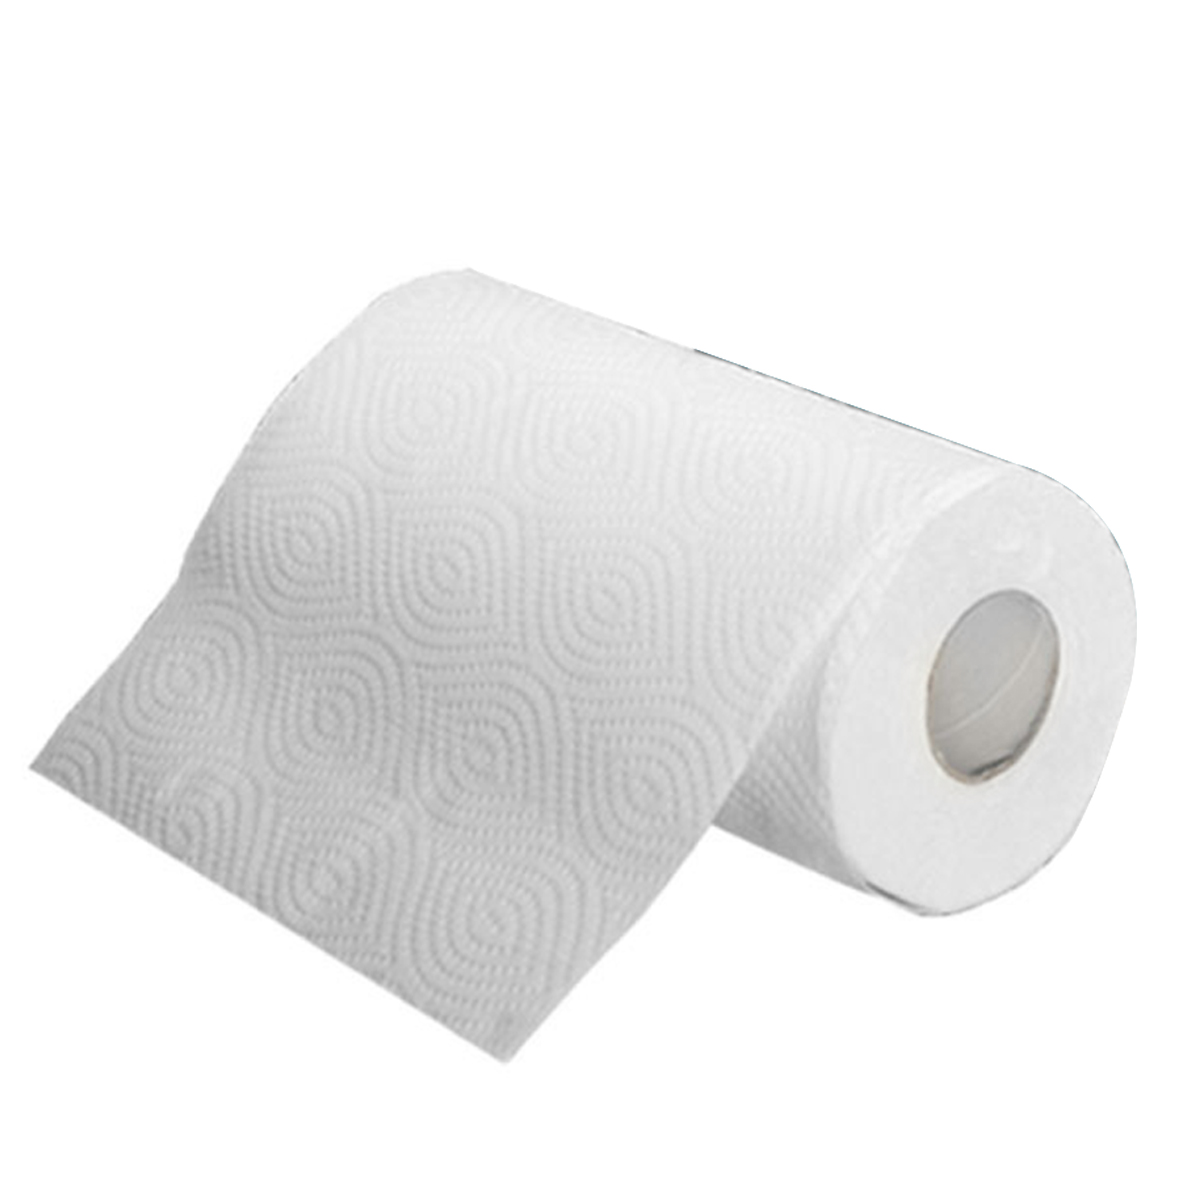 2 Roll Kitchen Paper Towels Thickened Design Water Oil Absorbent Roll Toilet Paper 2-Ply 75 Sheets Per Roll Wood Pulp Paper